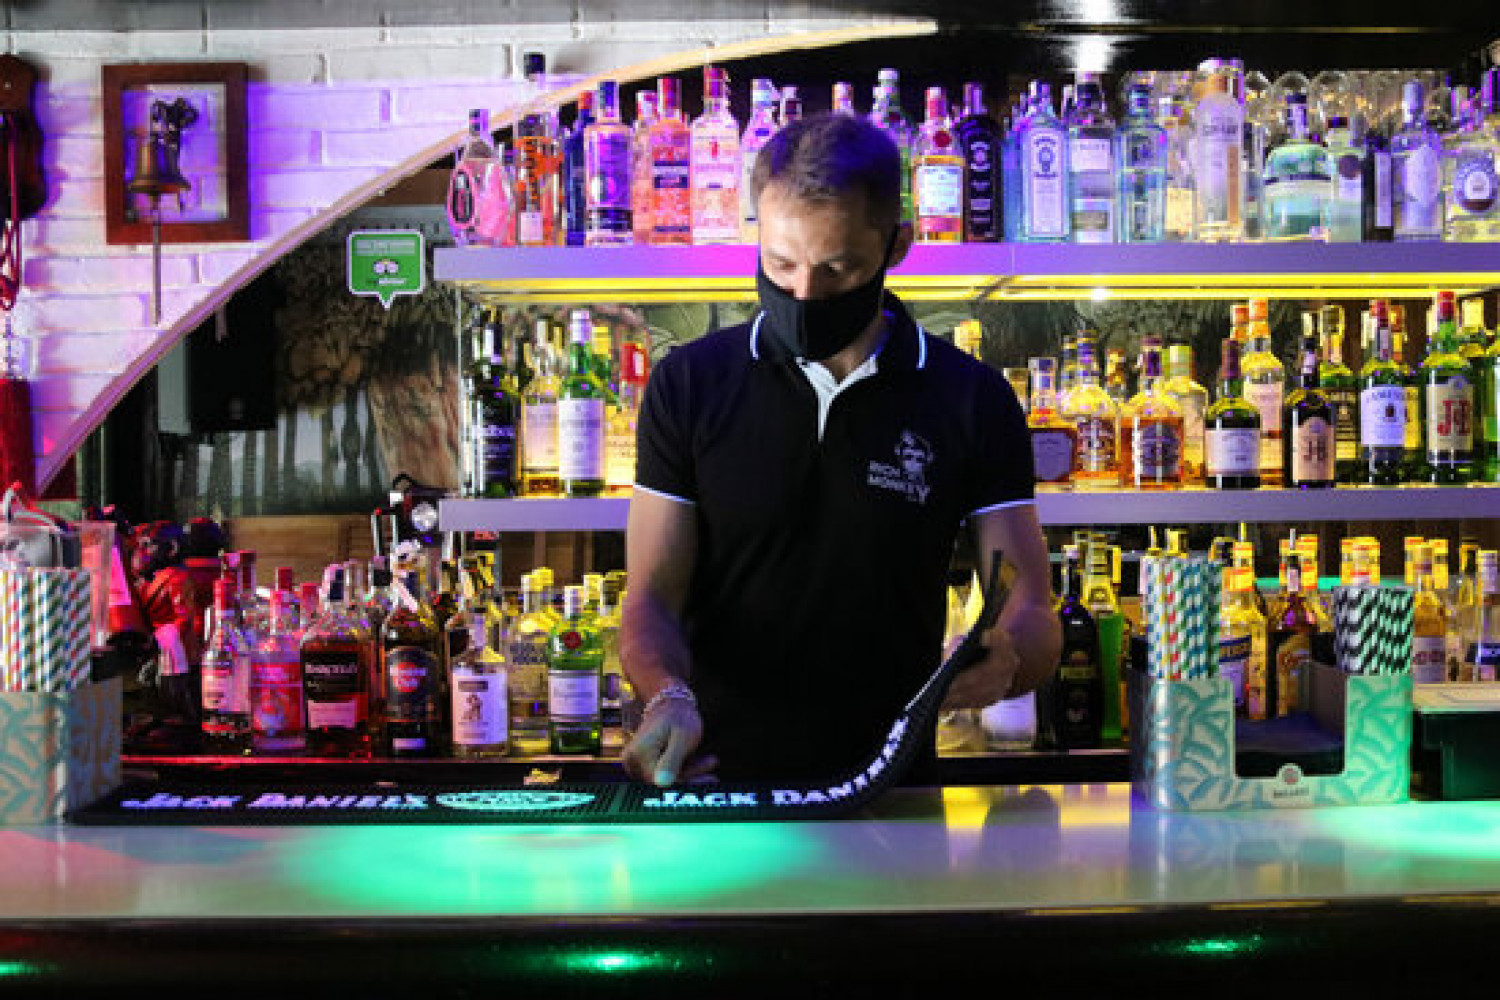 A bartender in Sitges (by Gemma Sánchez)